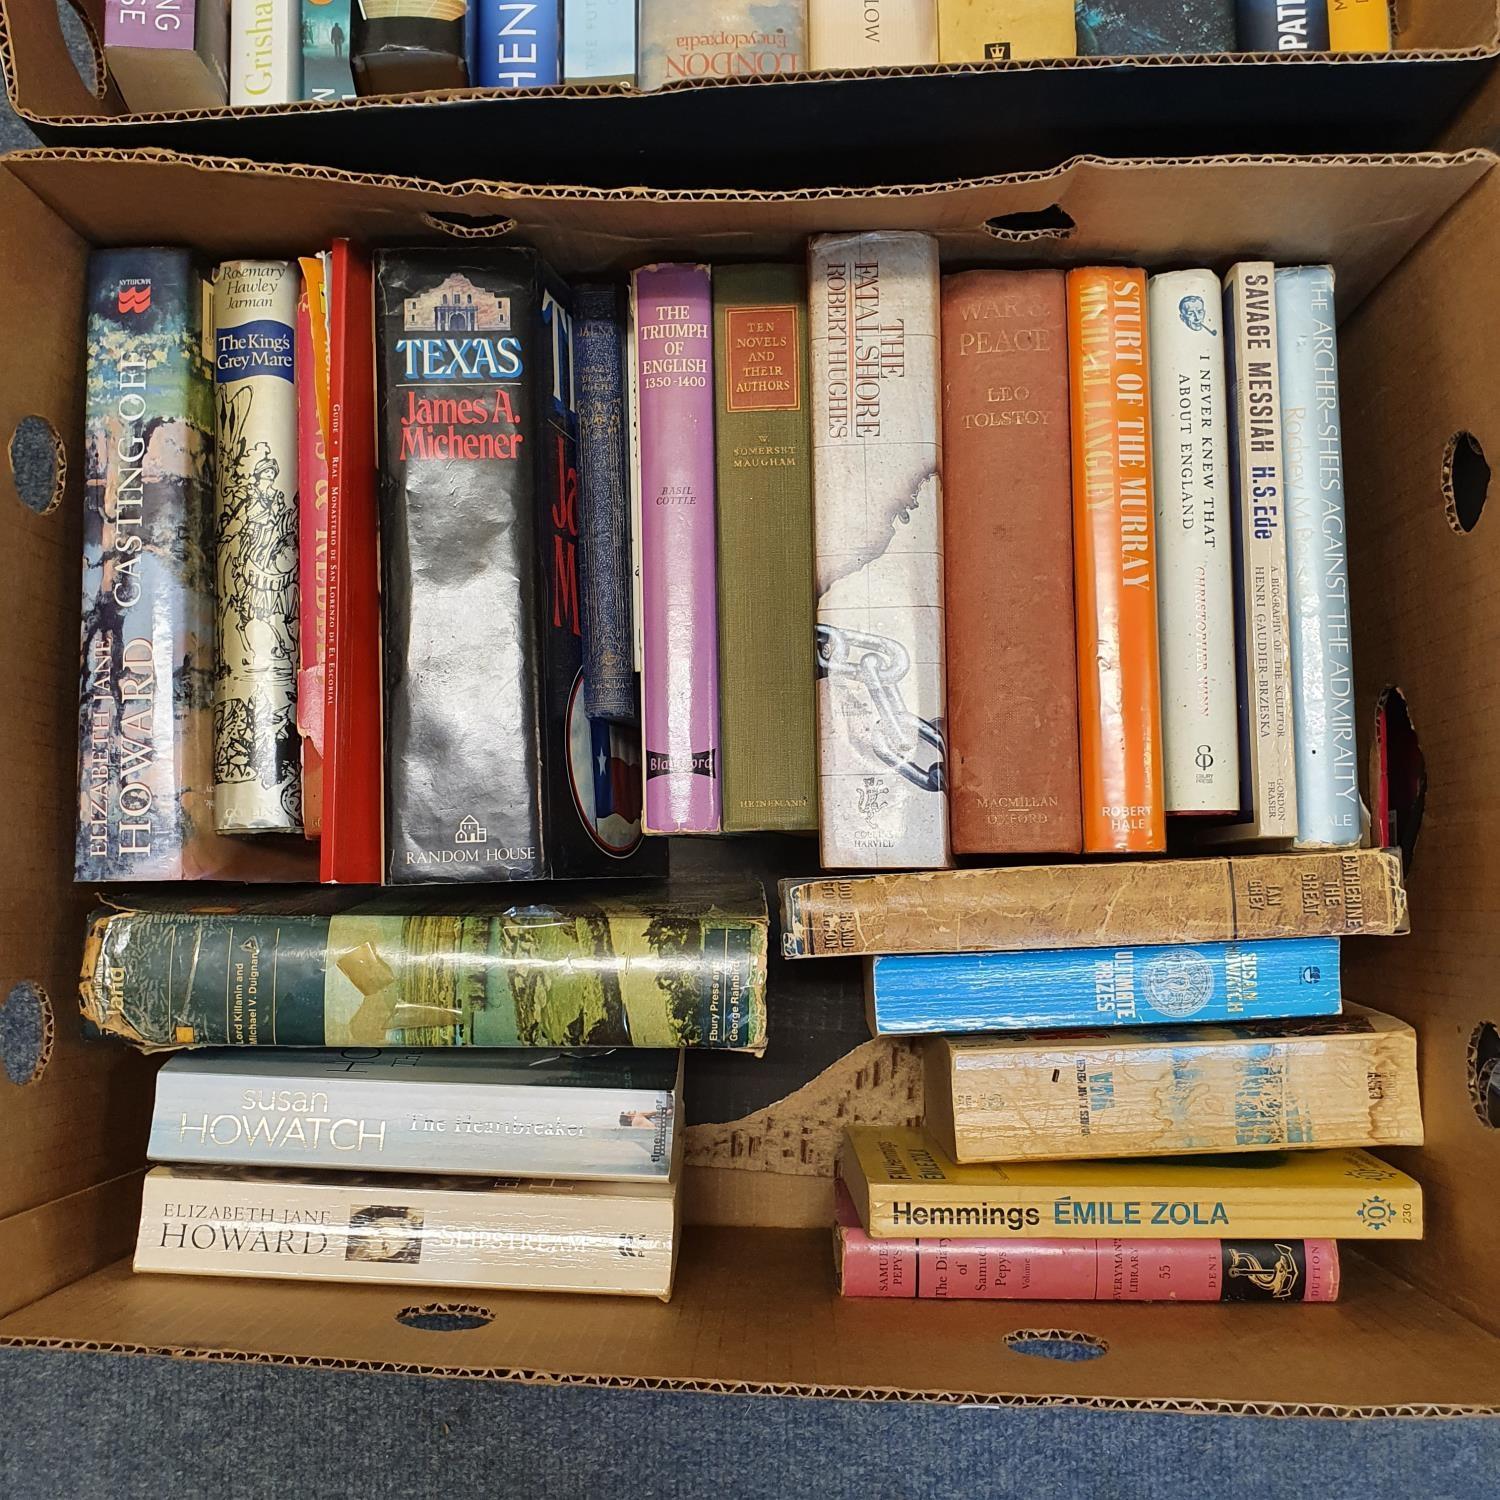 Hibbert (Christopher) London, and a large group of other books (19 boxes) - Image 3 of 21